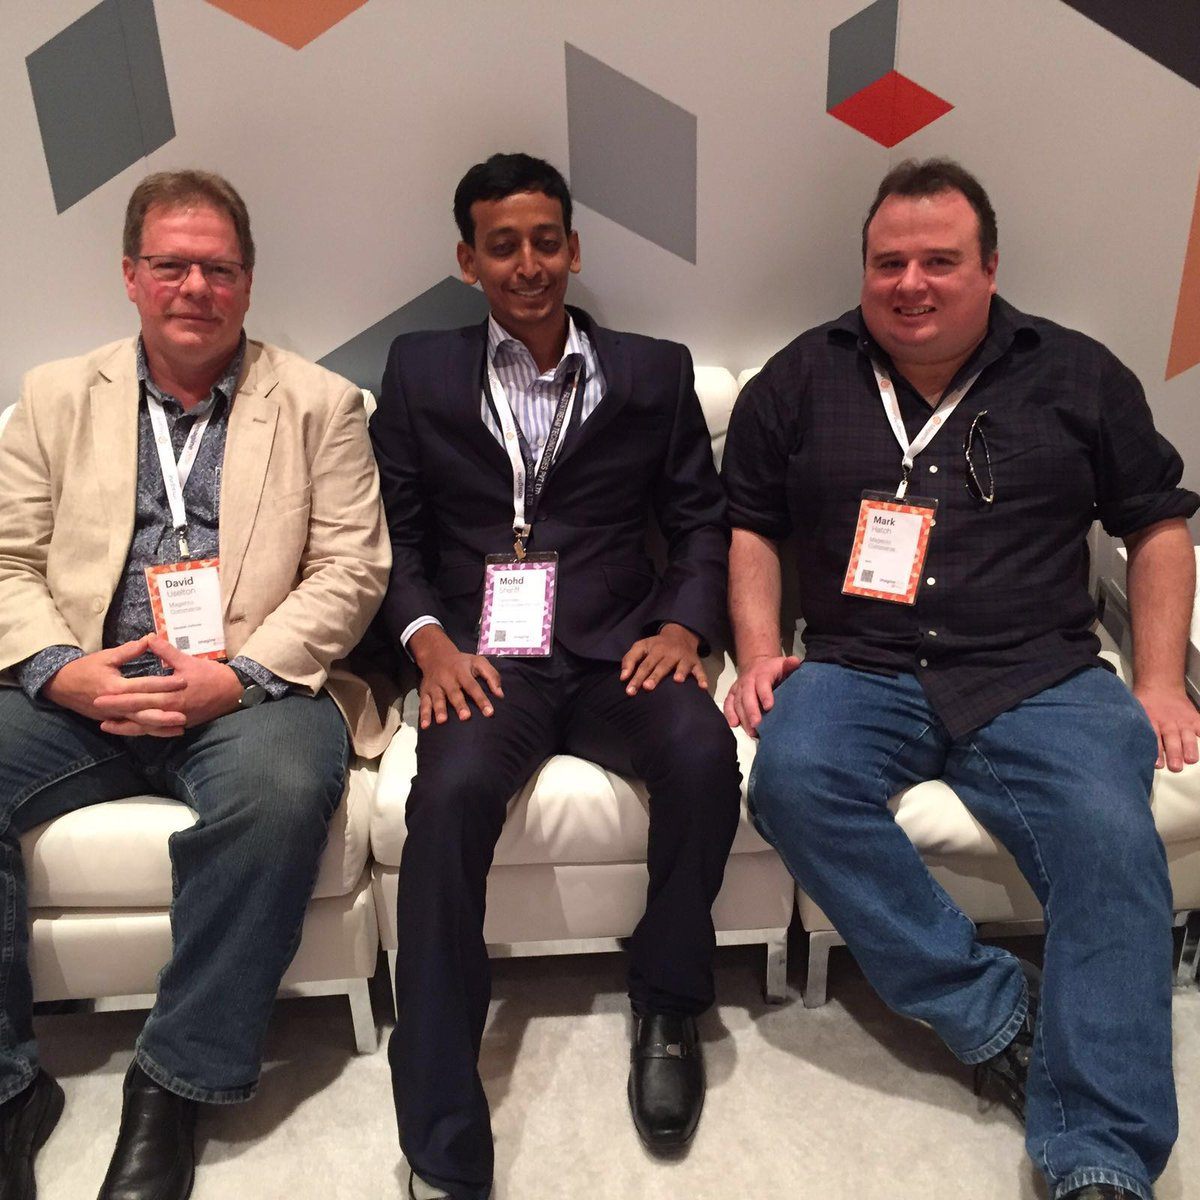 fstechno: Camaraderie @magento Mark Hatch, David Uselton and @MohdSheriffUSA #ImagineCommerce #MagentoImagine https://t.co/7hfoboJeZo